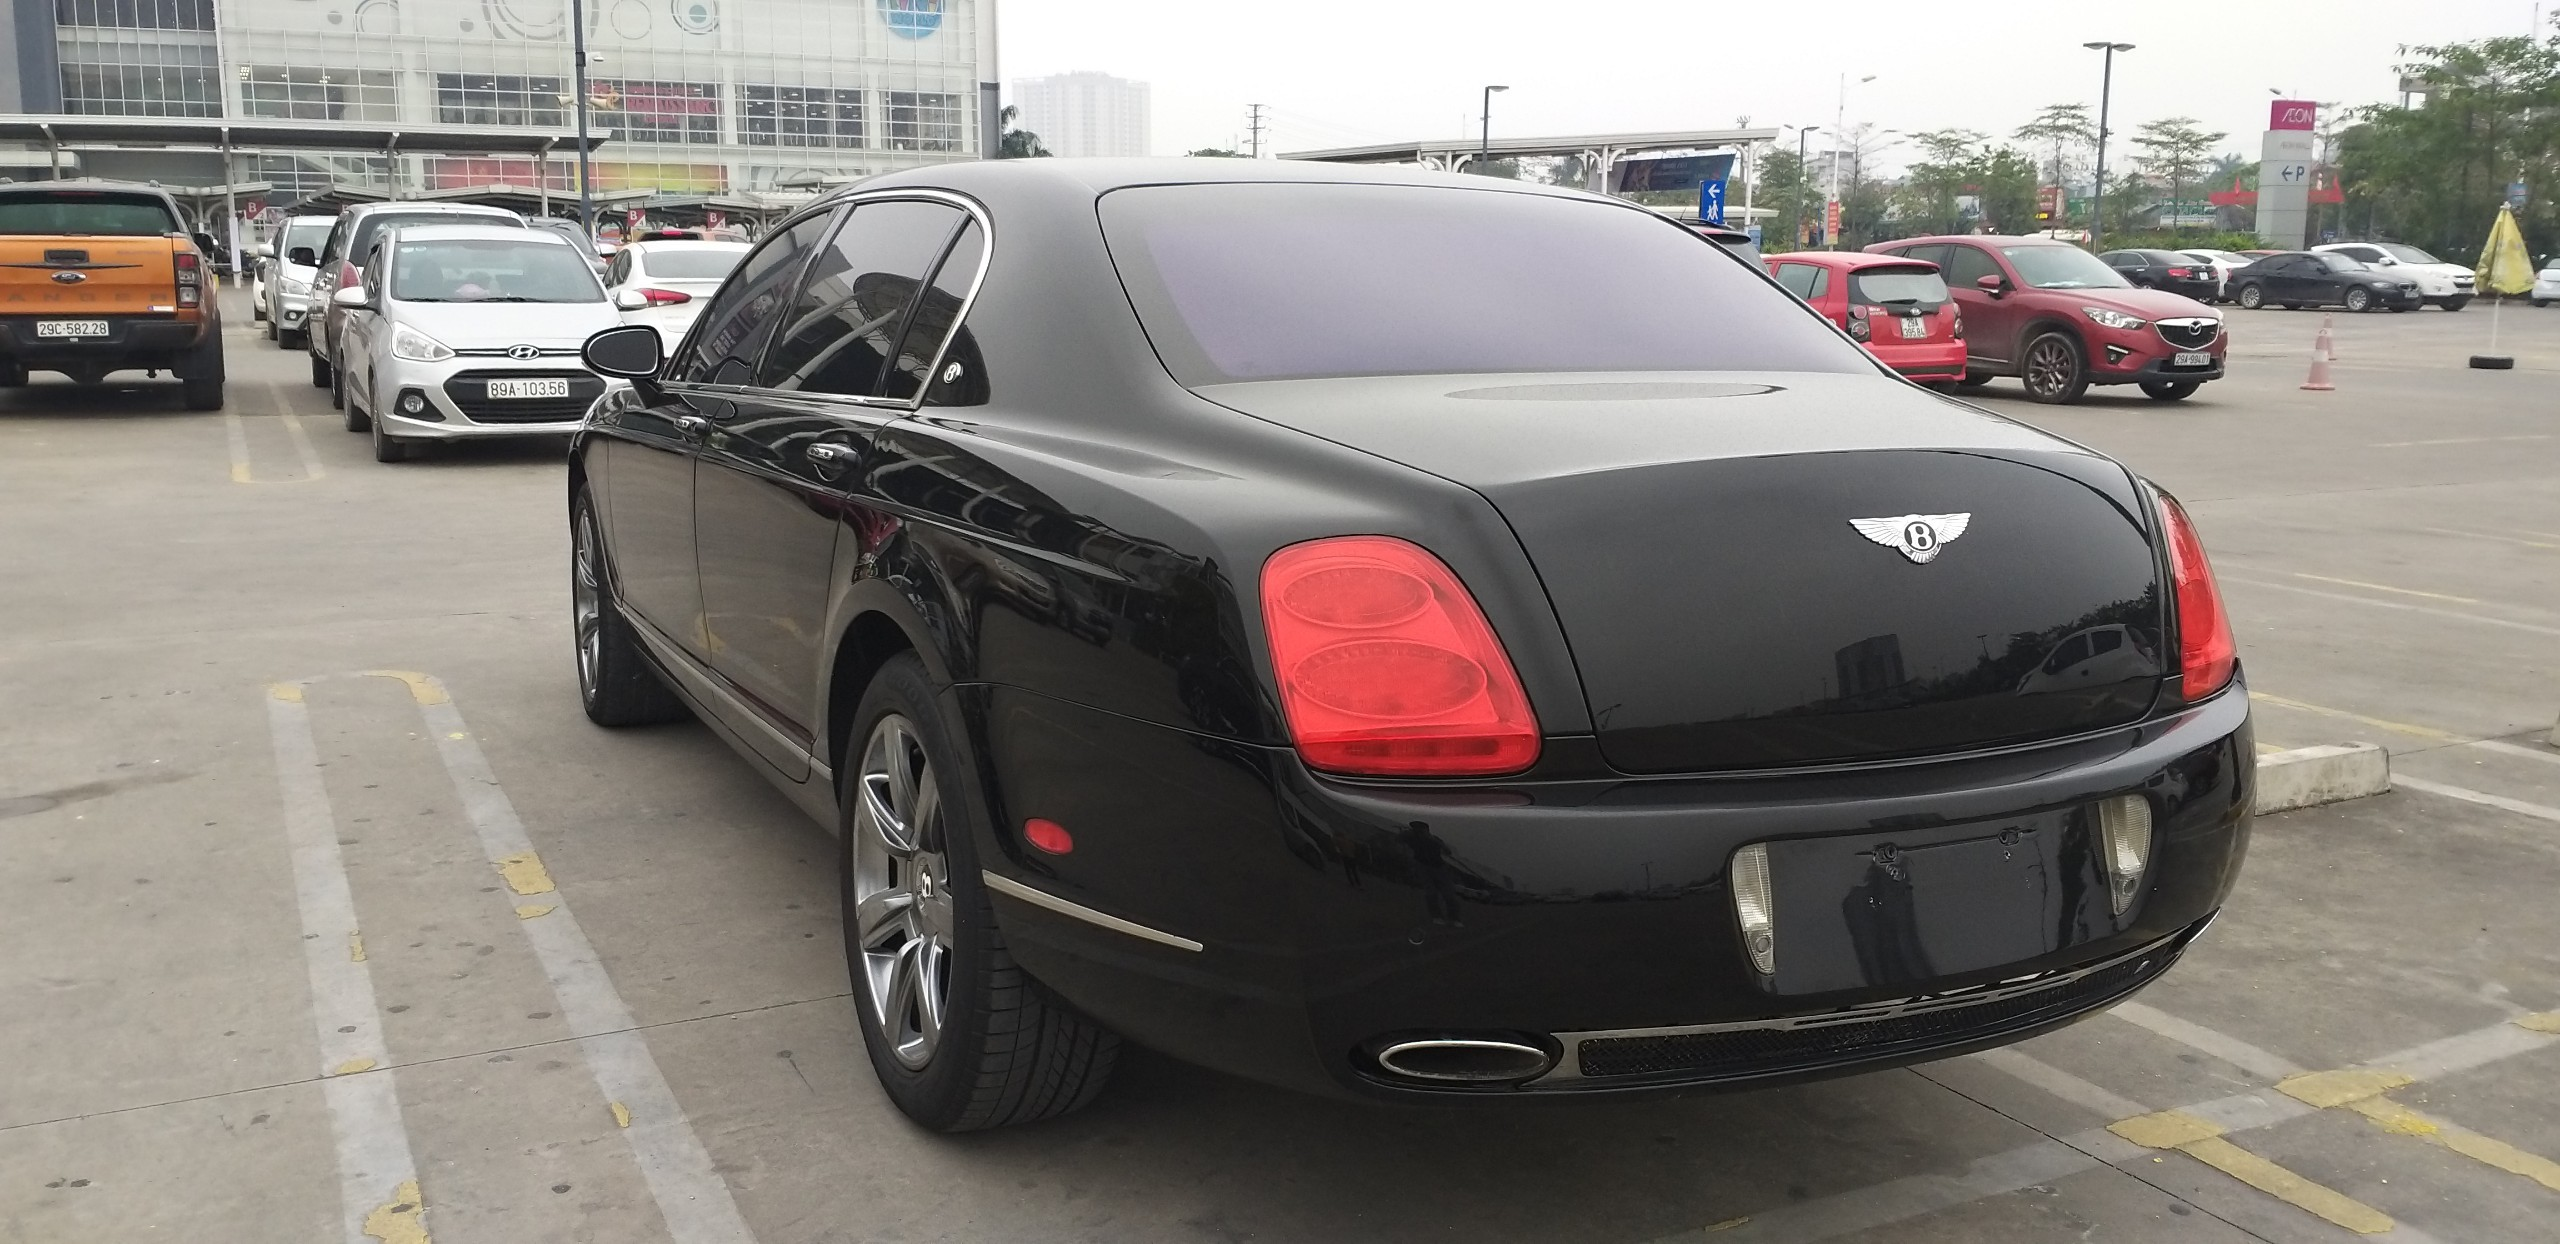 Bán Bentley Continental Flying Spur 2006 Ảnh số 42325214